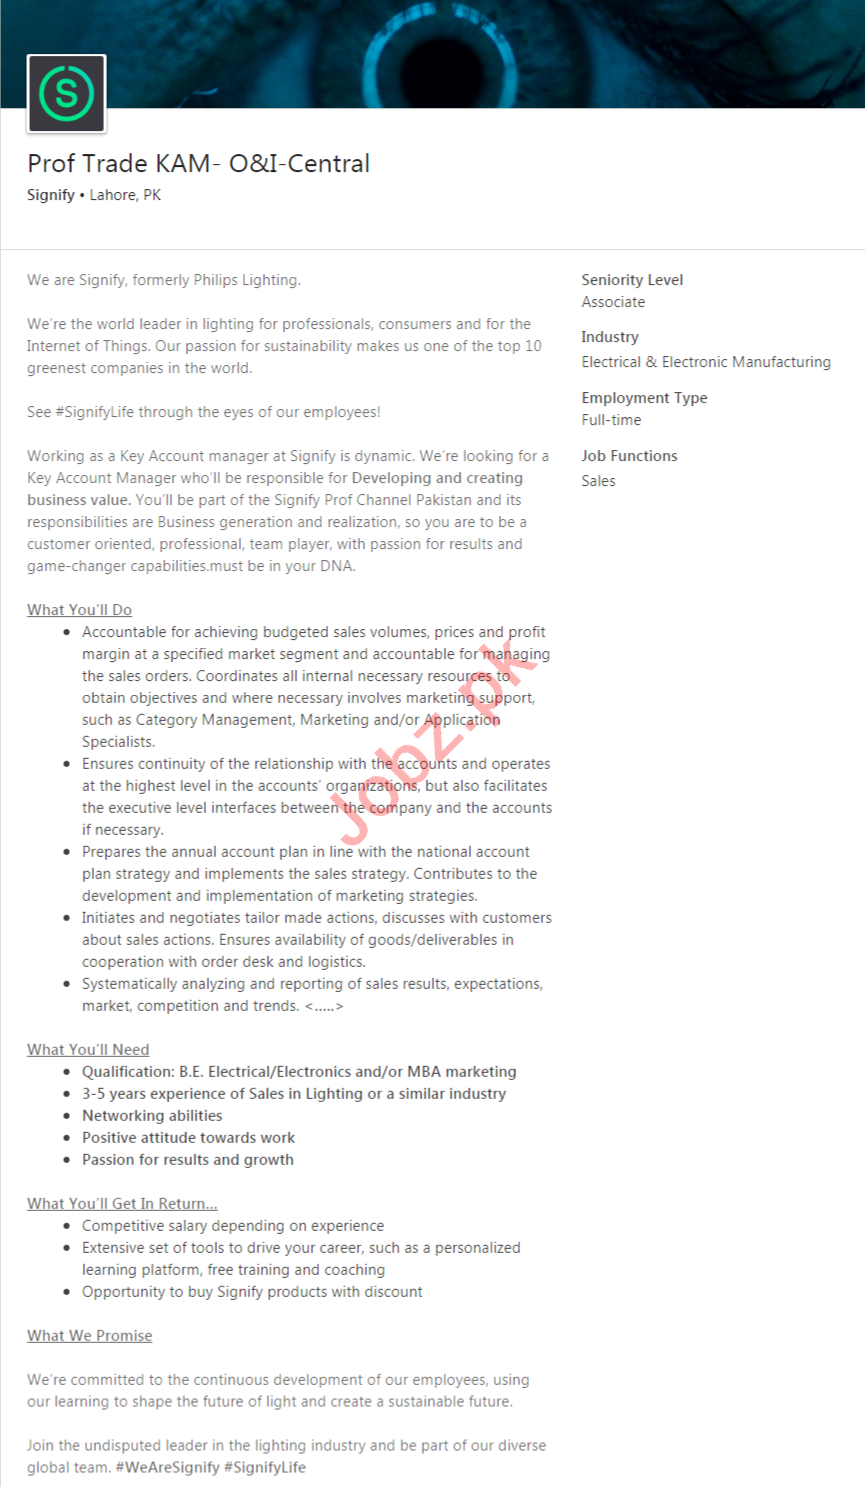 Signify Lahore Jobs 2020 for Prof Trade KAM